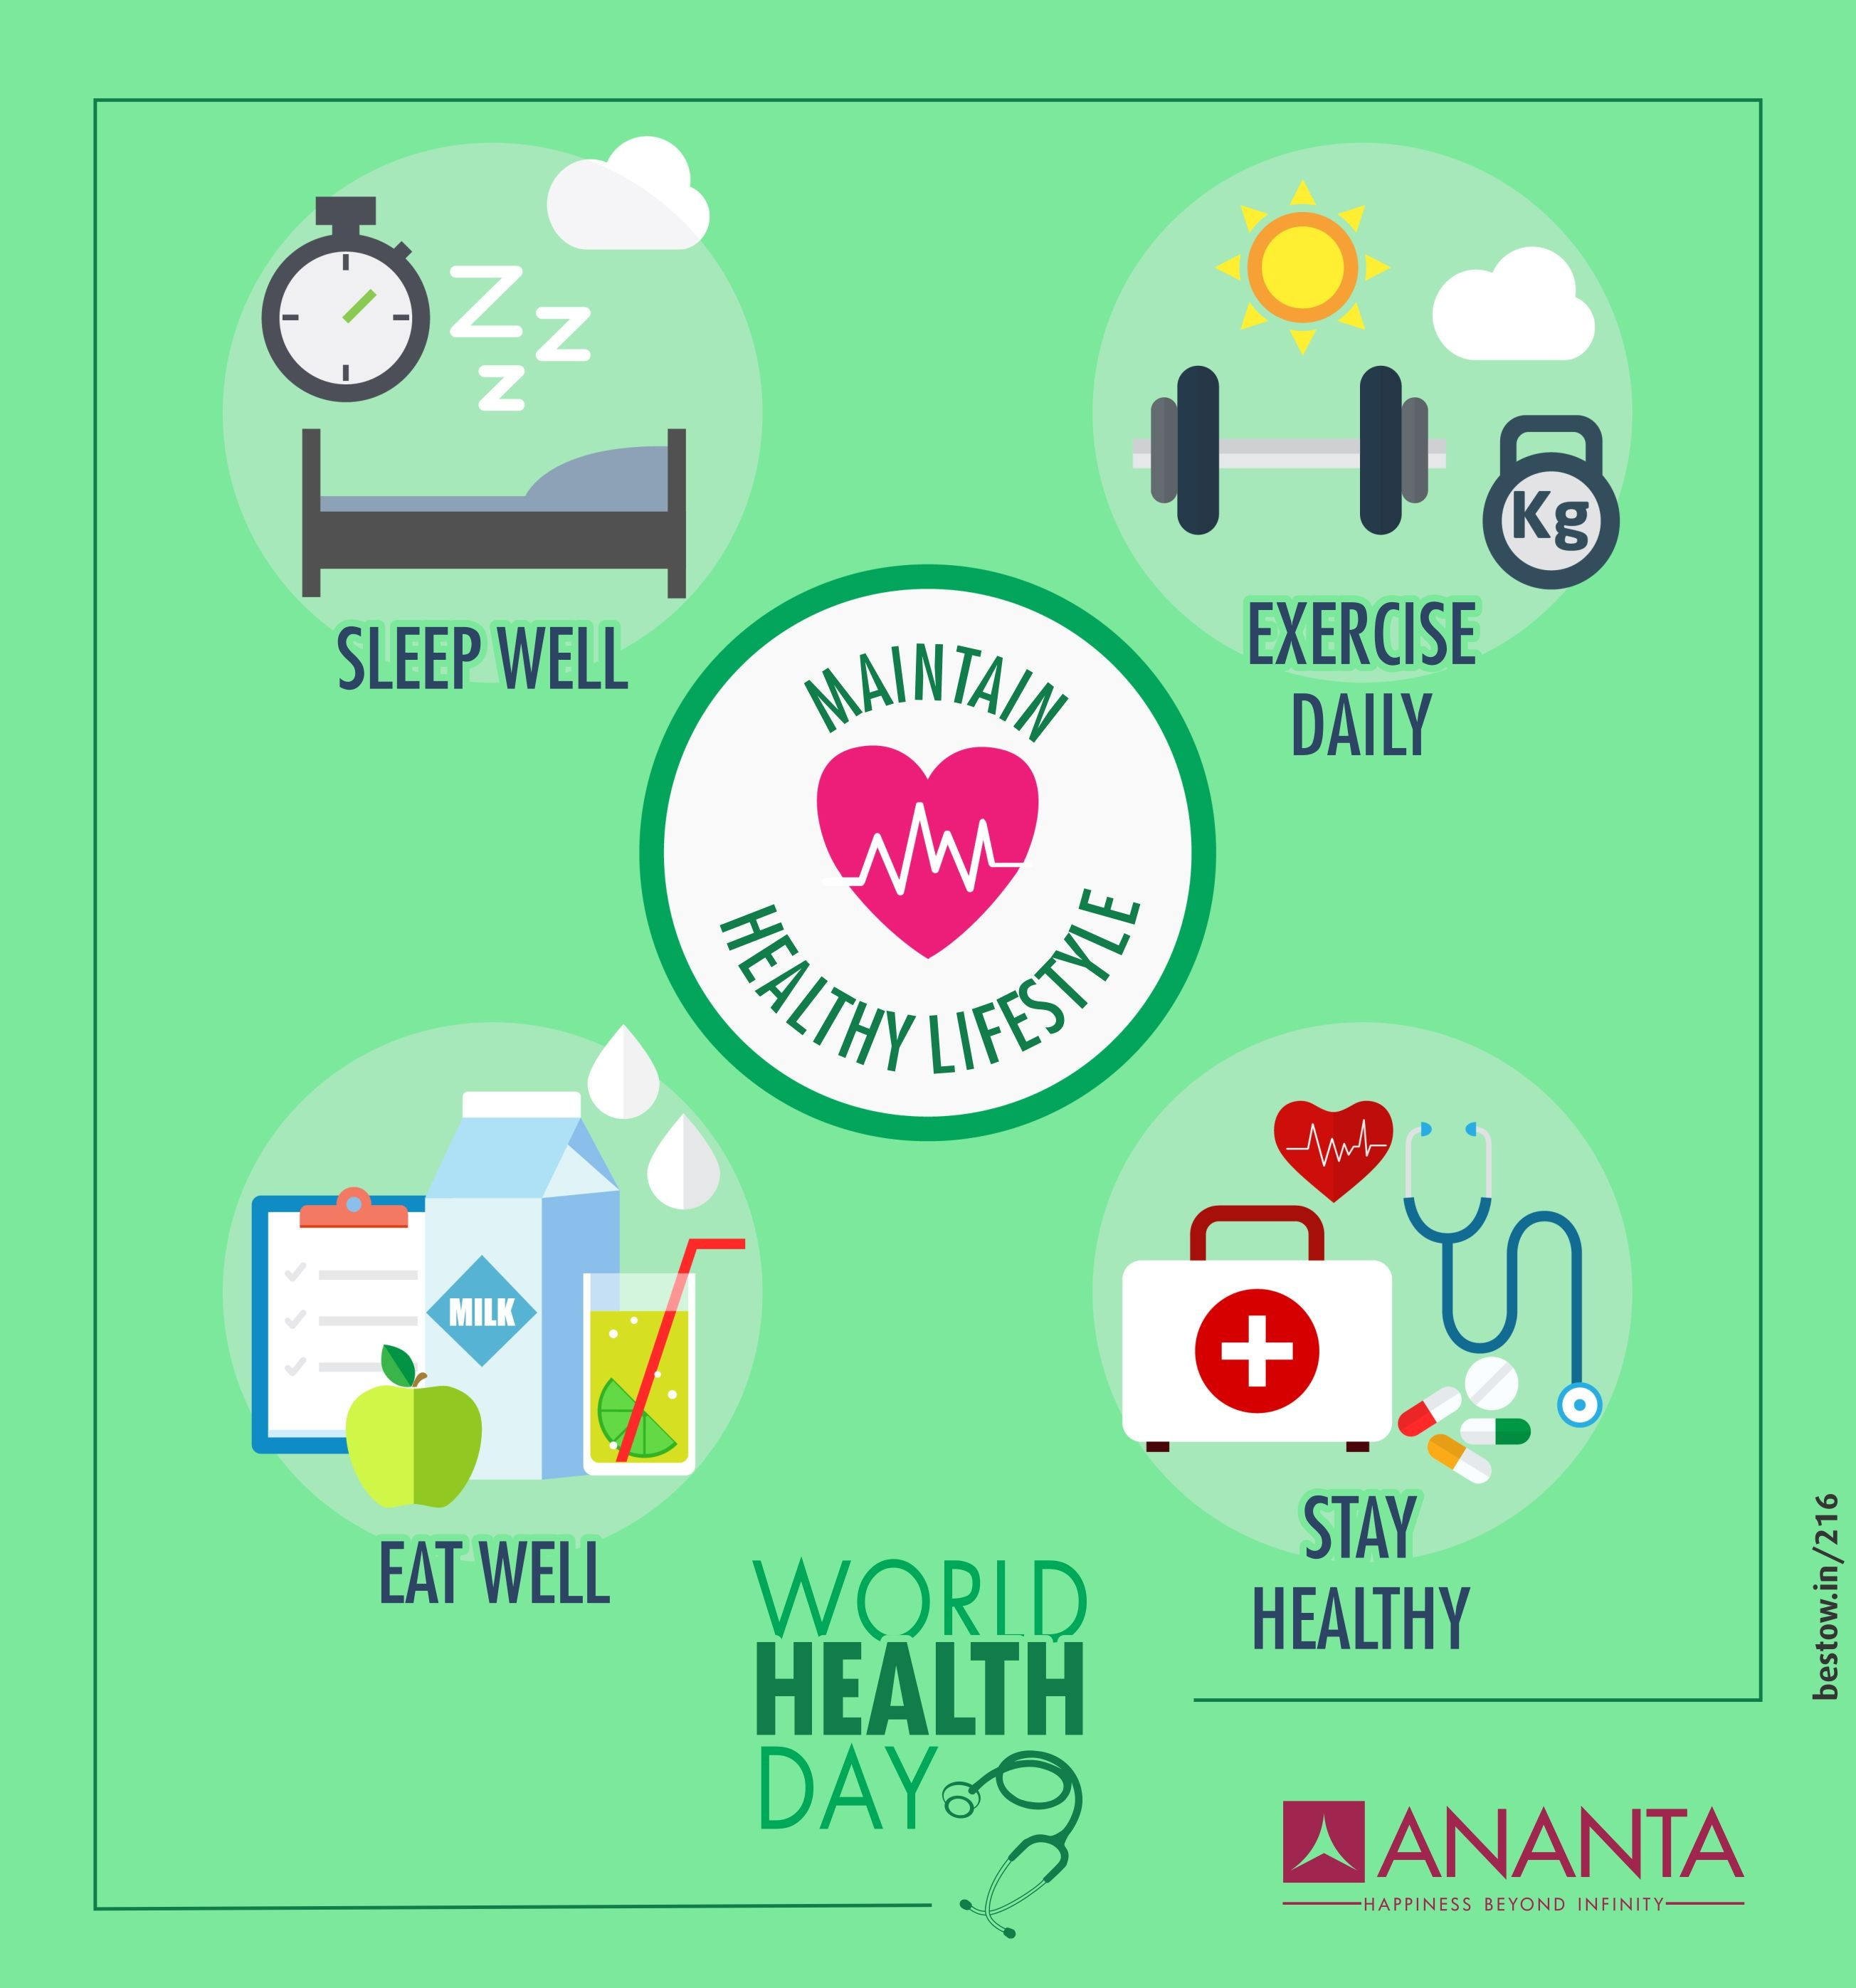 Make Healthy Choices Because Health Is The Real Wealth Ananta Builders Wishes Everyone A Very Happy World World Health Day Funny Health Quotes Healthy Choices